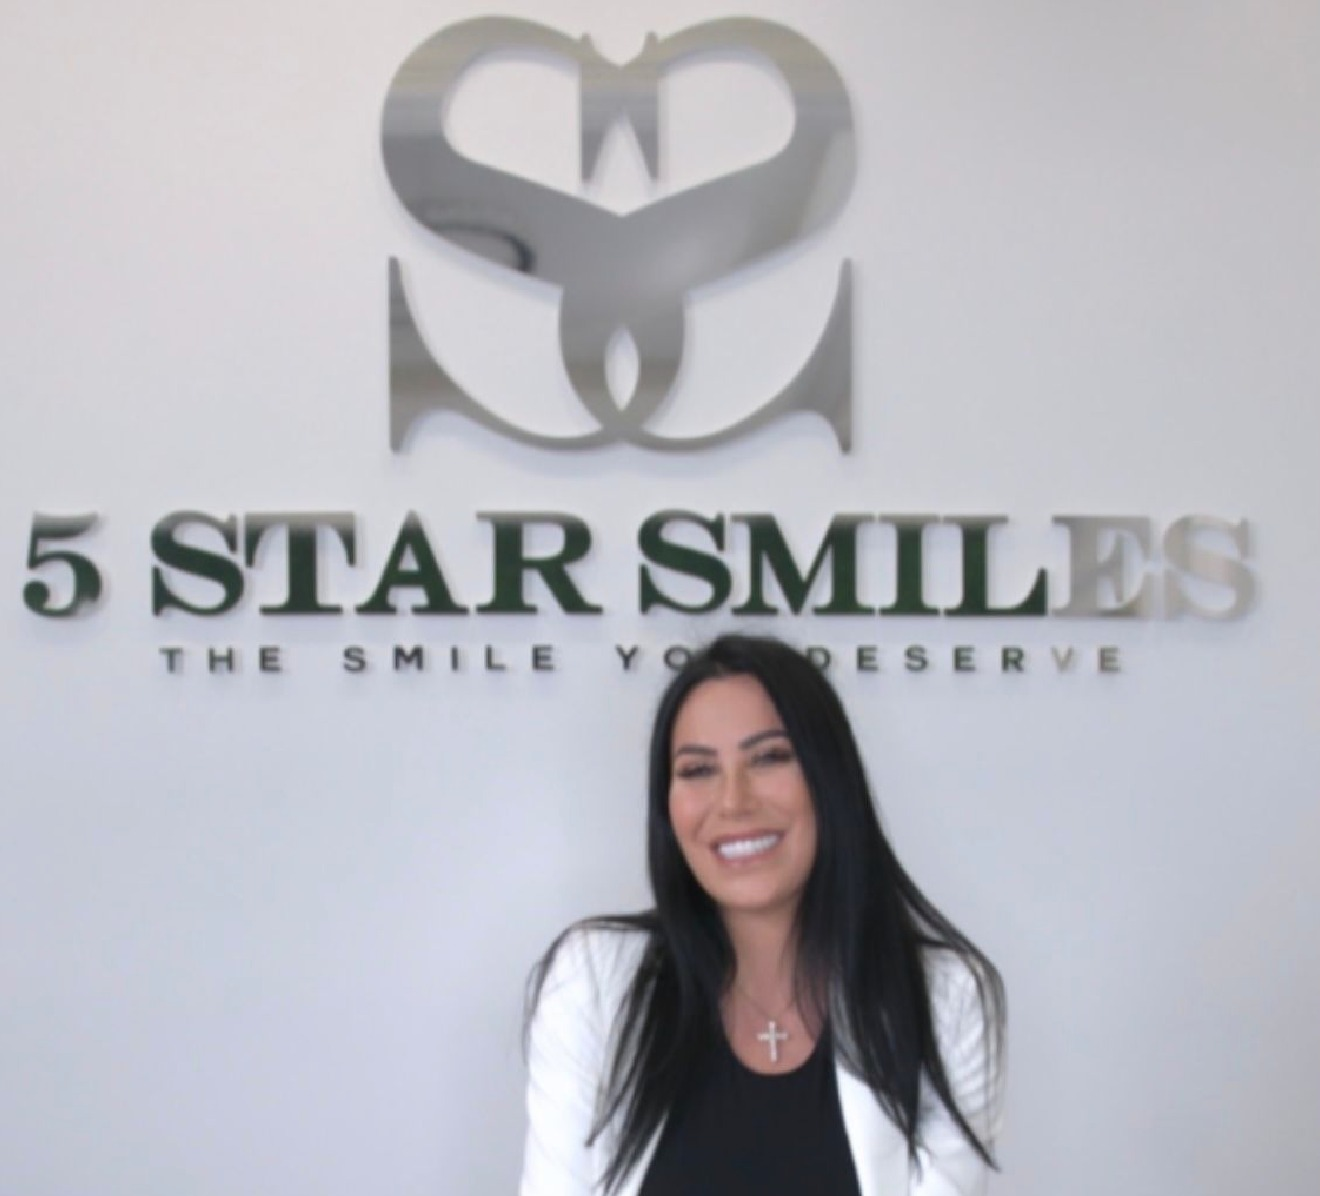 5 Star Smiles: Building Confidence in the Sunshine State With Exceptional Smile Makeovers